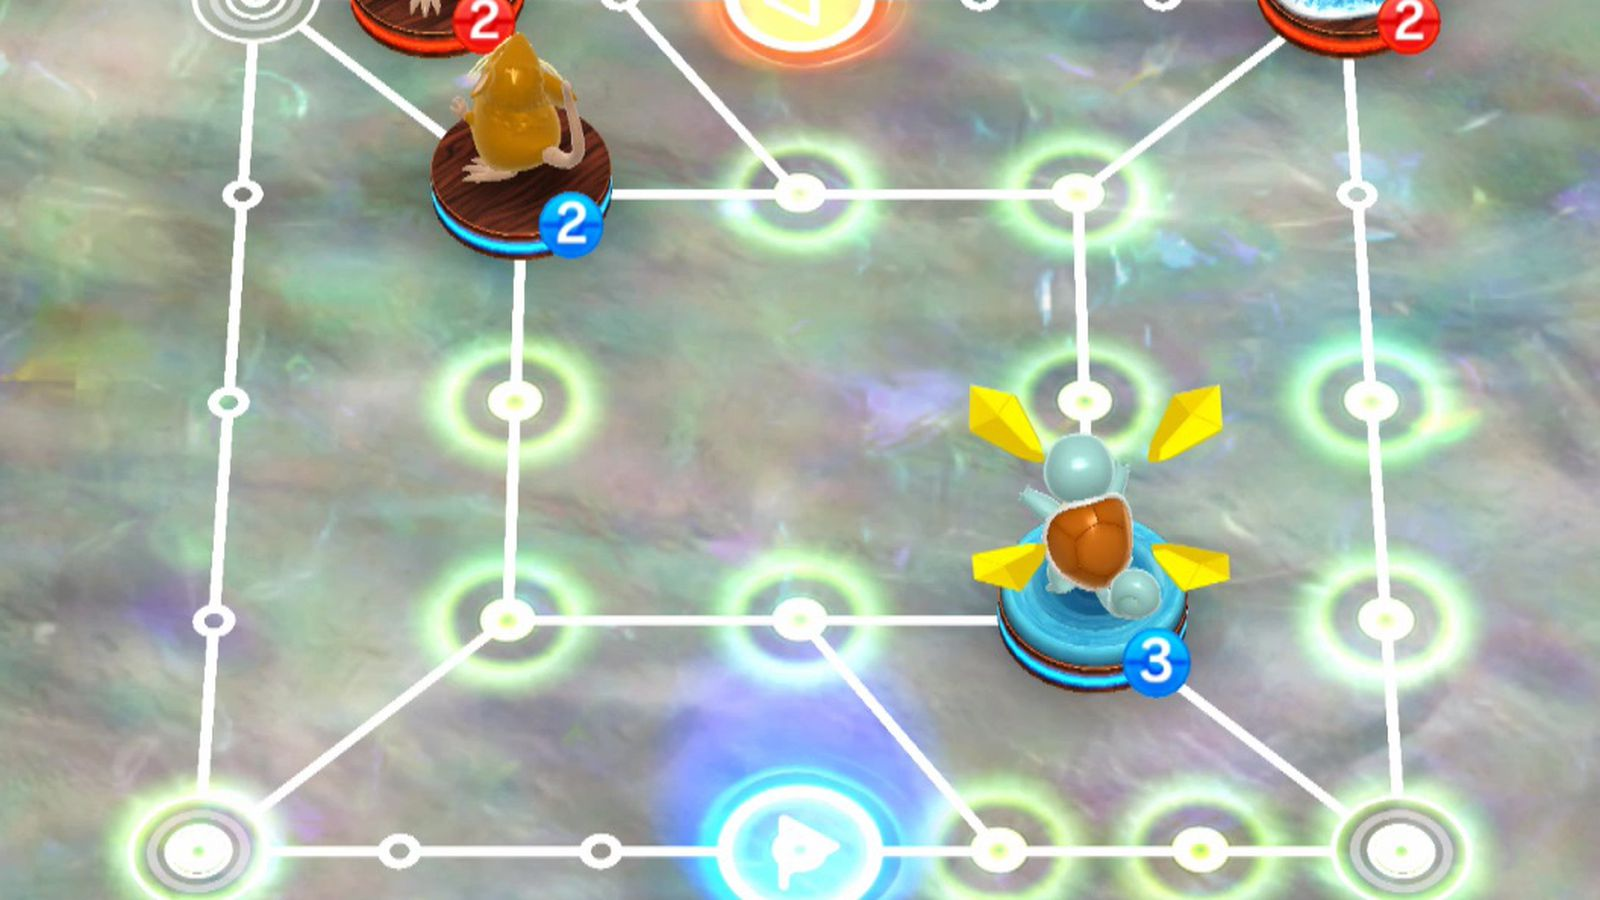 Pokémon Duel is a slick digital board game for your phone